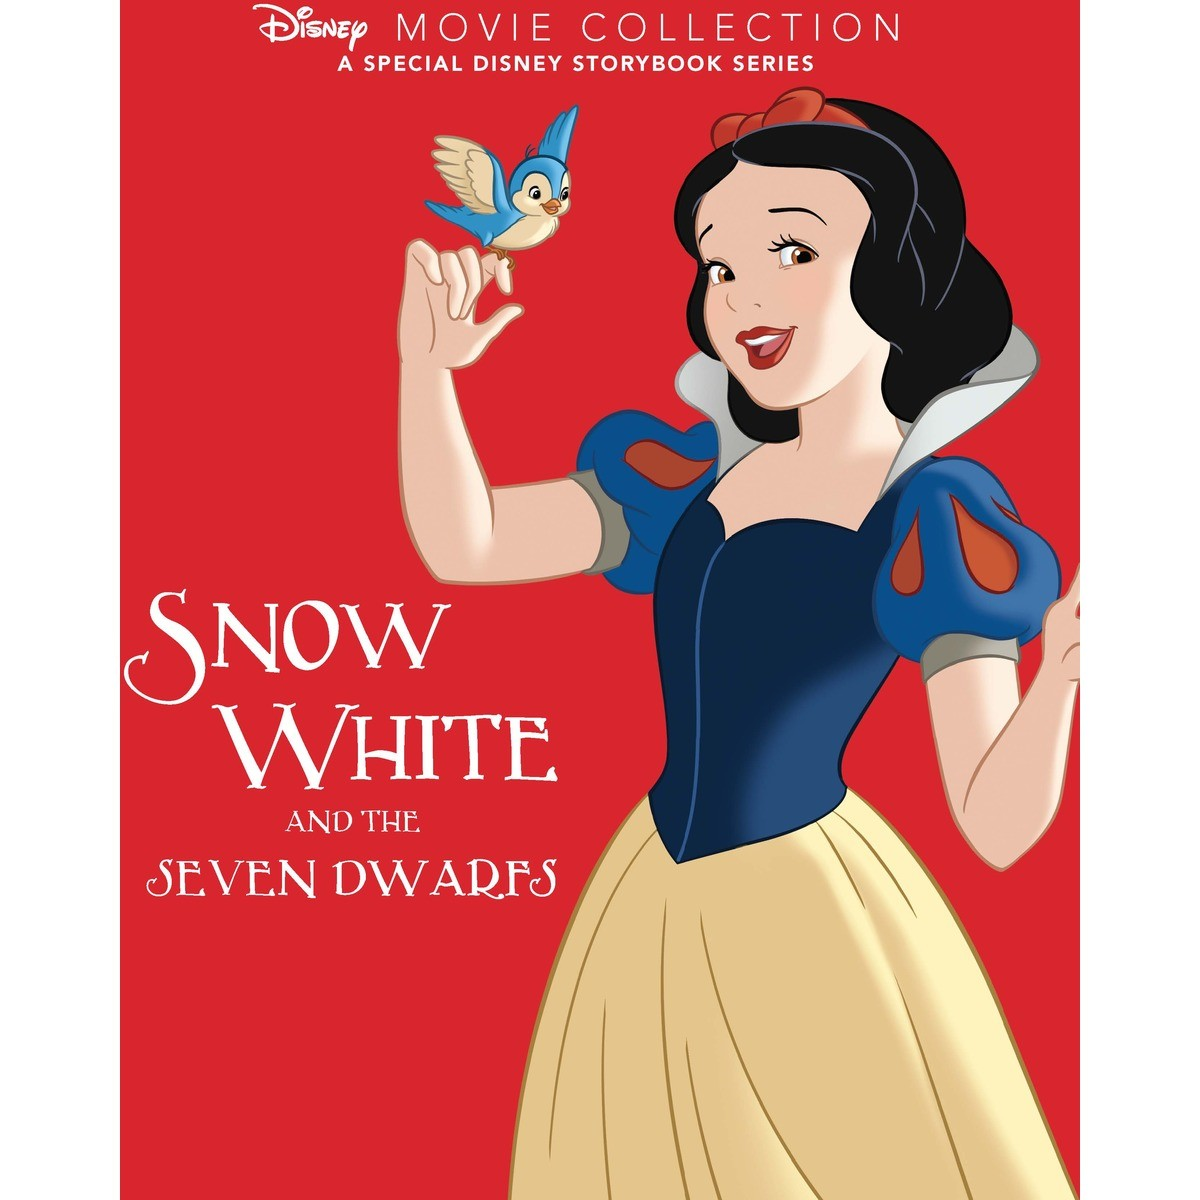 Disney Movie Collection Snow White And The Seven Dwarfs